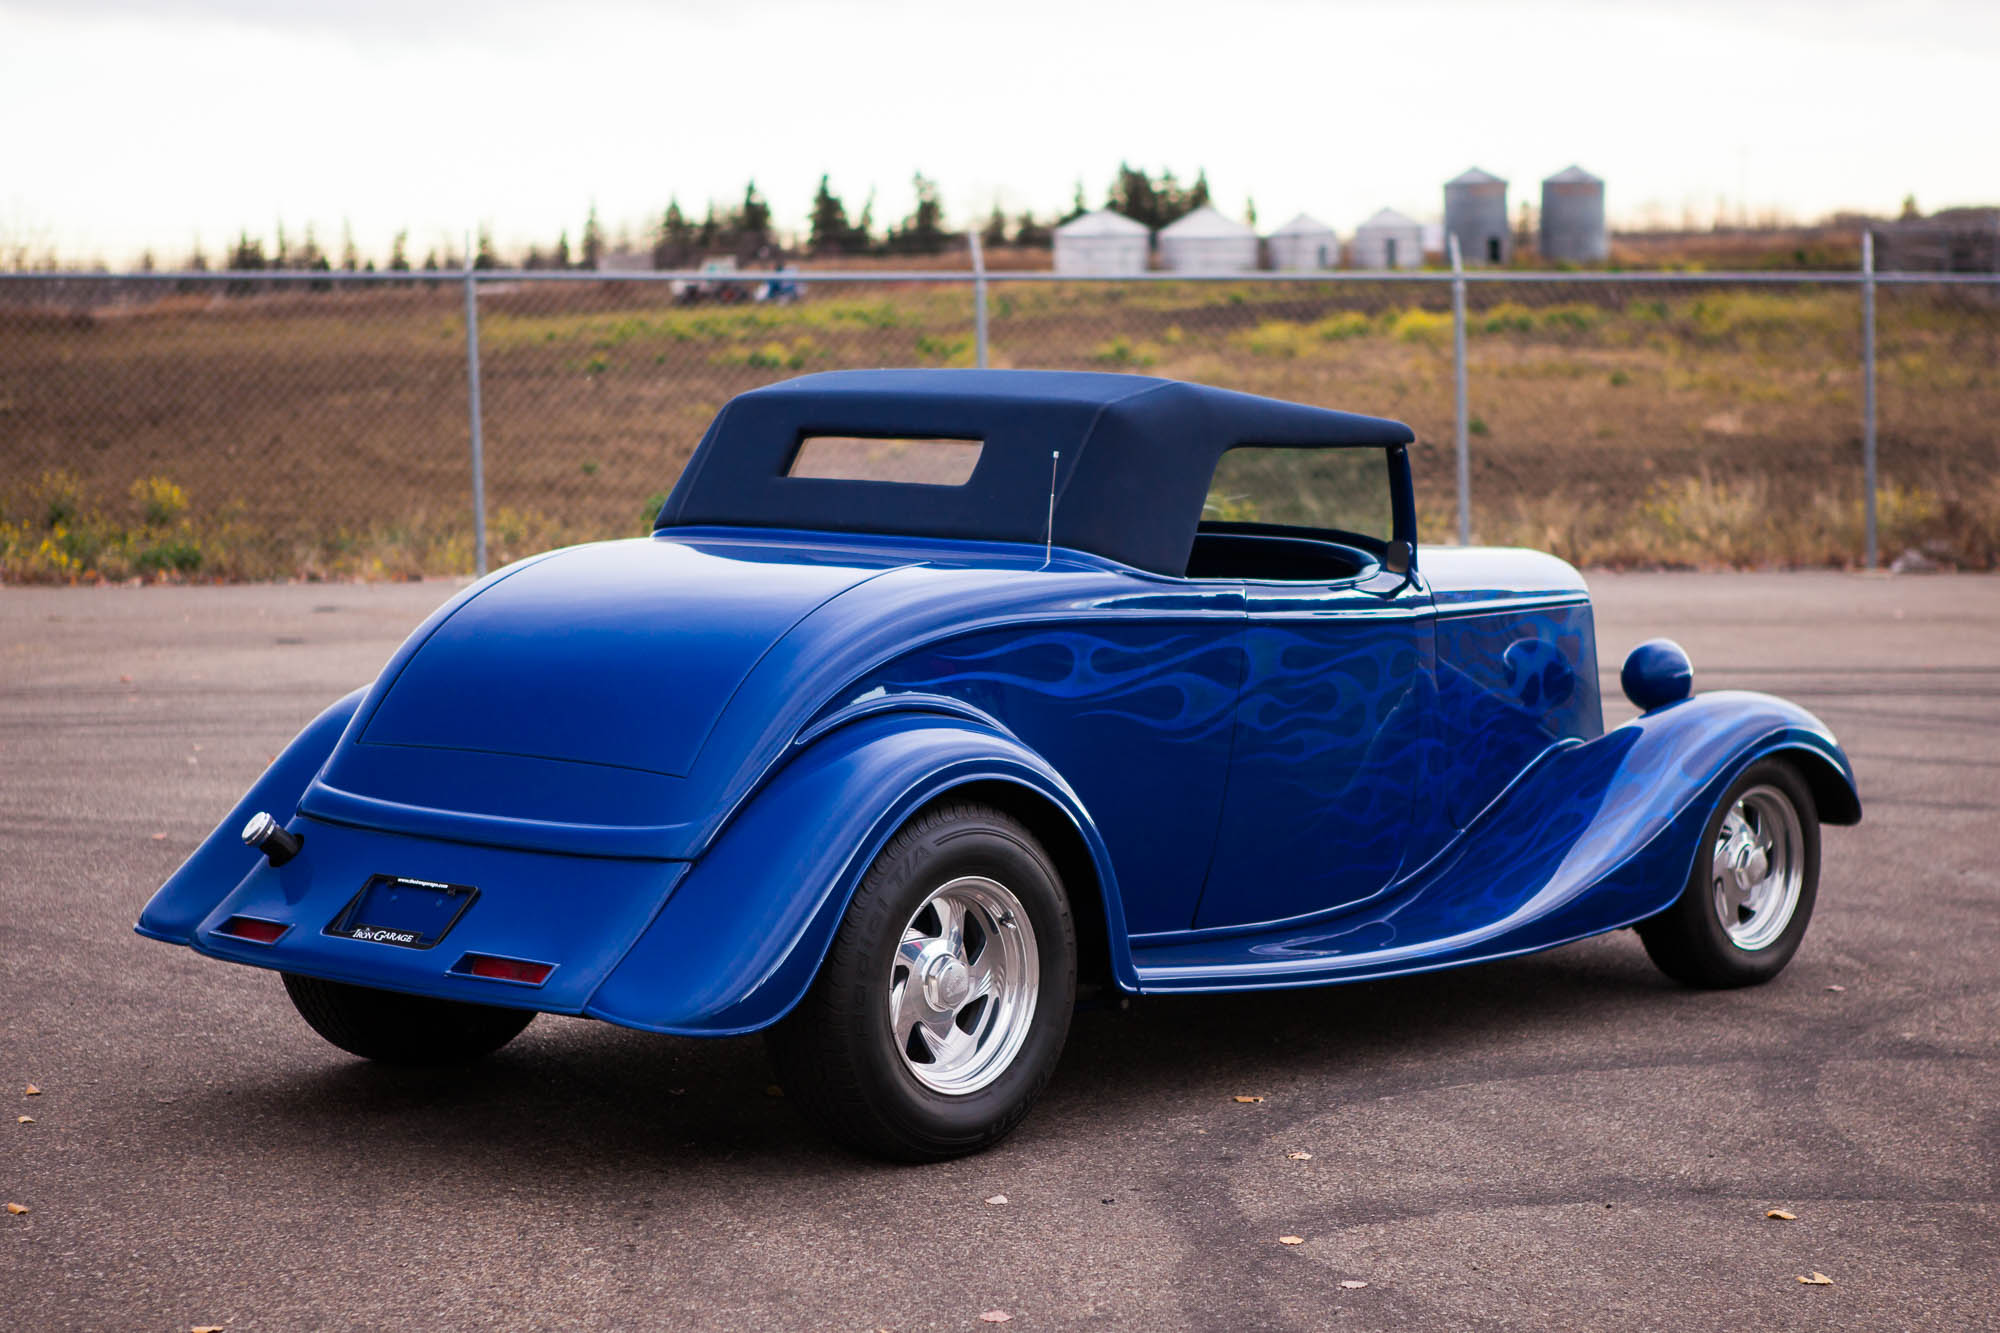 Chevy 3 3 >> 1933 Full-Fender Ford Roadster - For Sale - The Iron Garage